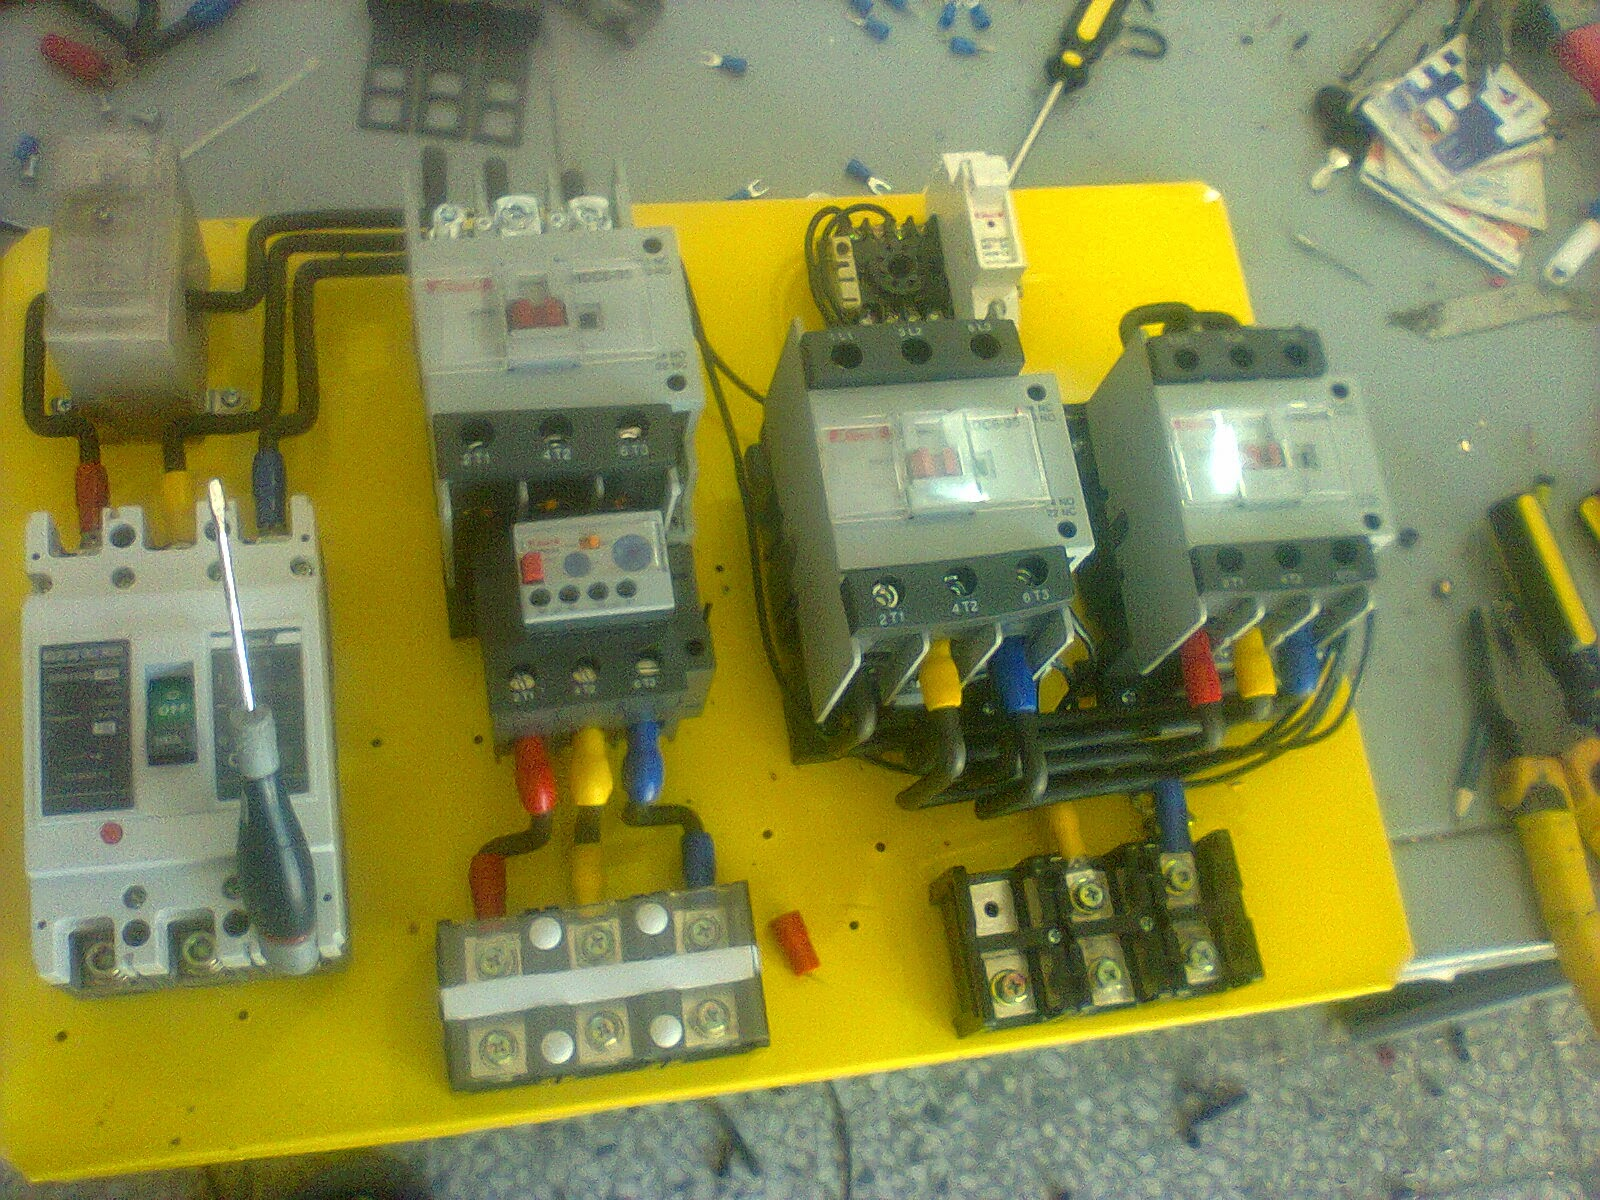 Star Delta Starter Wiring Diagram With Timer Vole Skeleton 3 Phase Motor Automatic